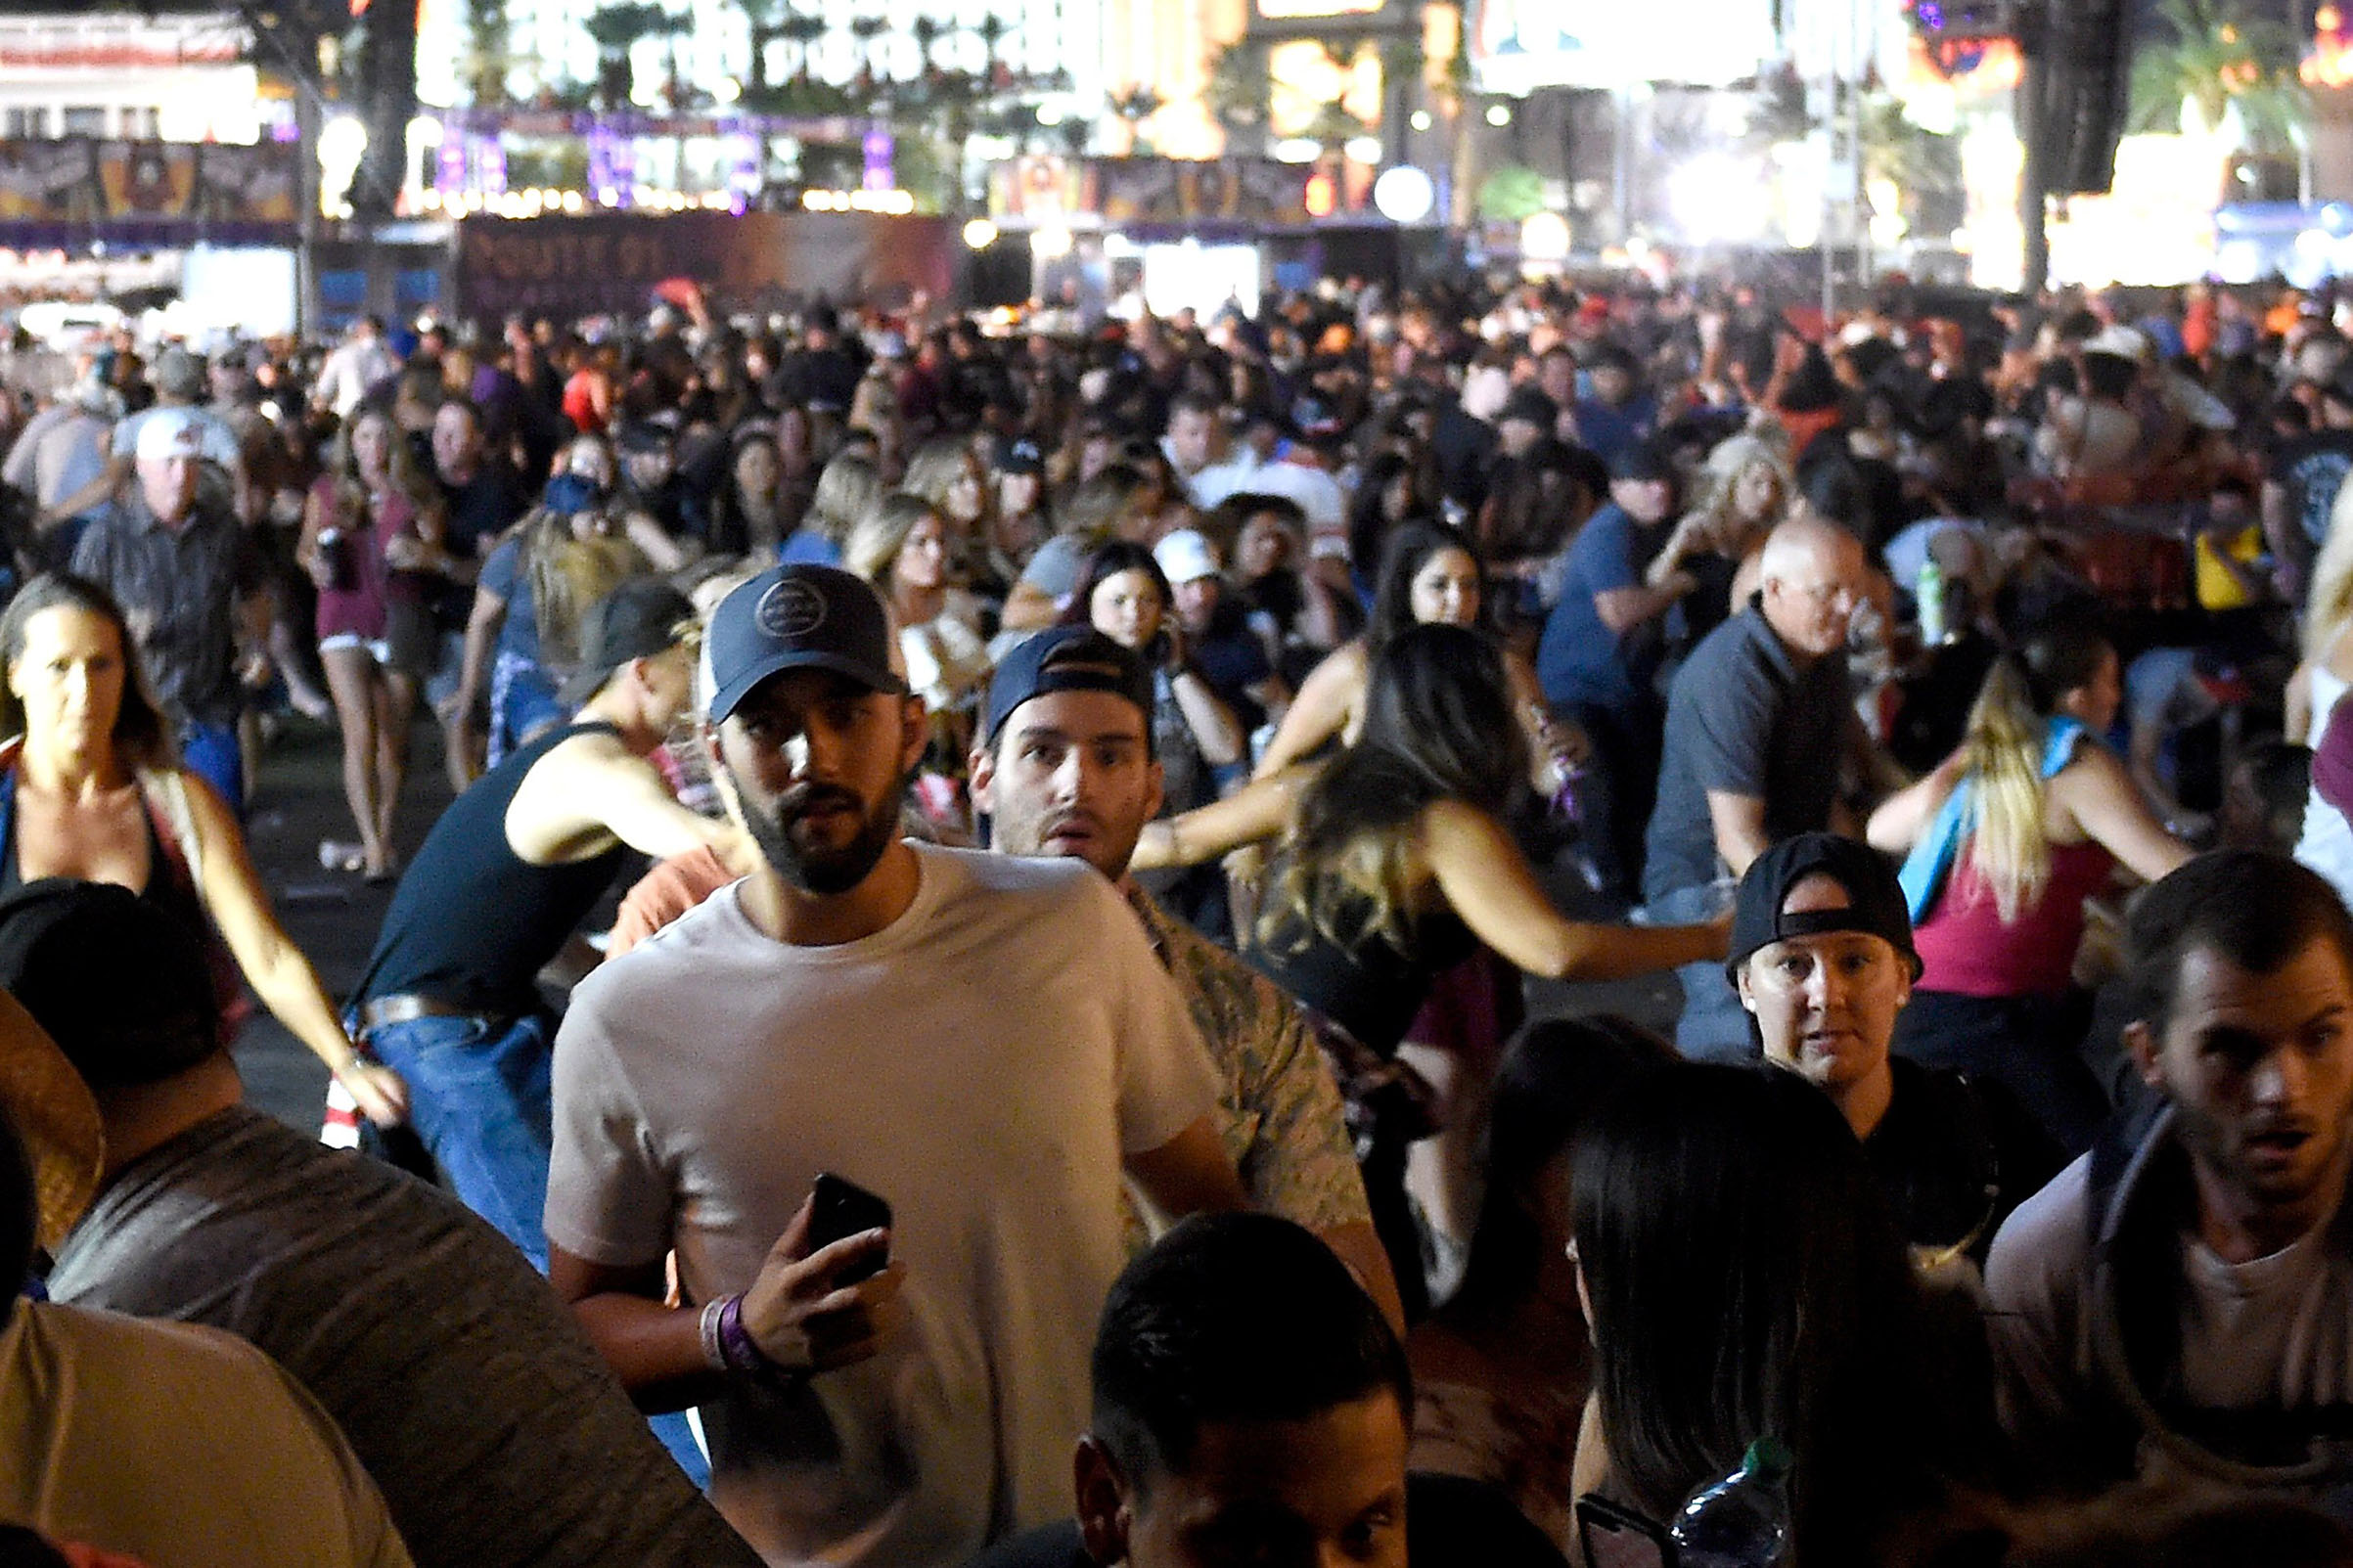 People flee the Route 91 Harvest country music festival grounds after a active shooter was reported on Oct. 1, 2017 in Las Vegas.